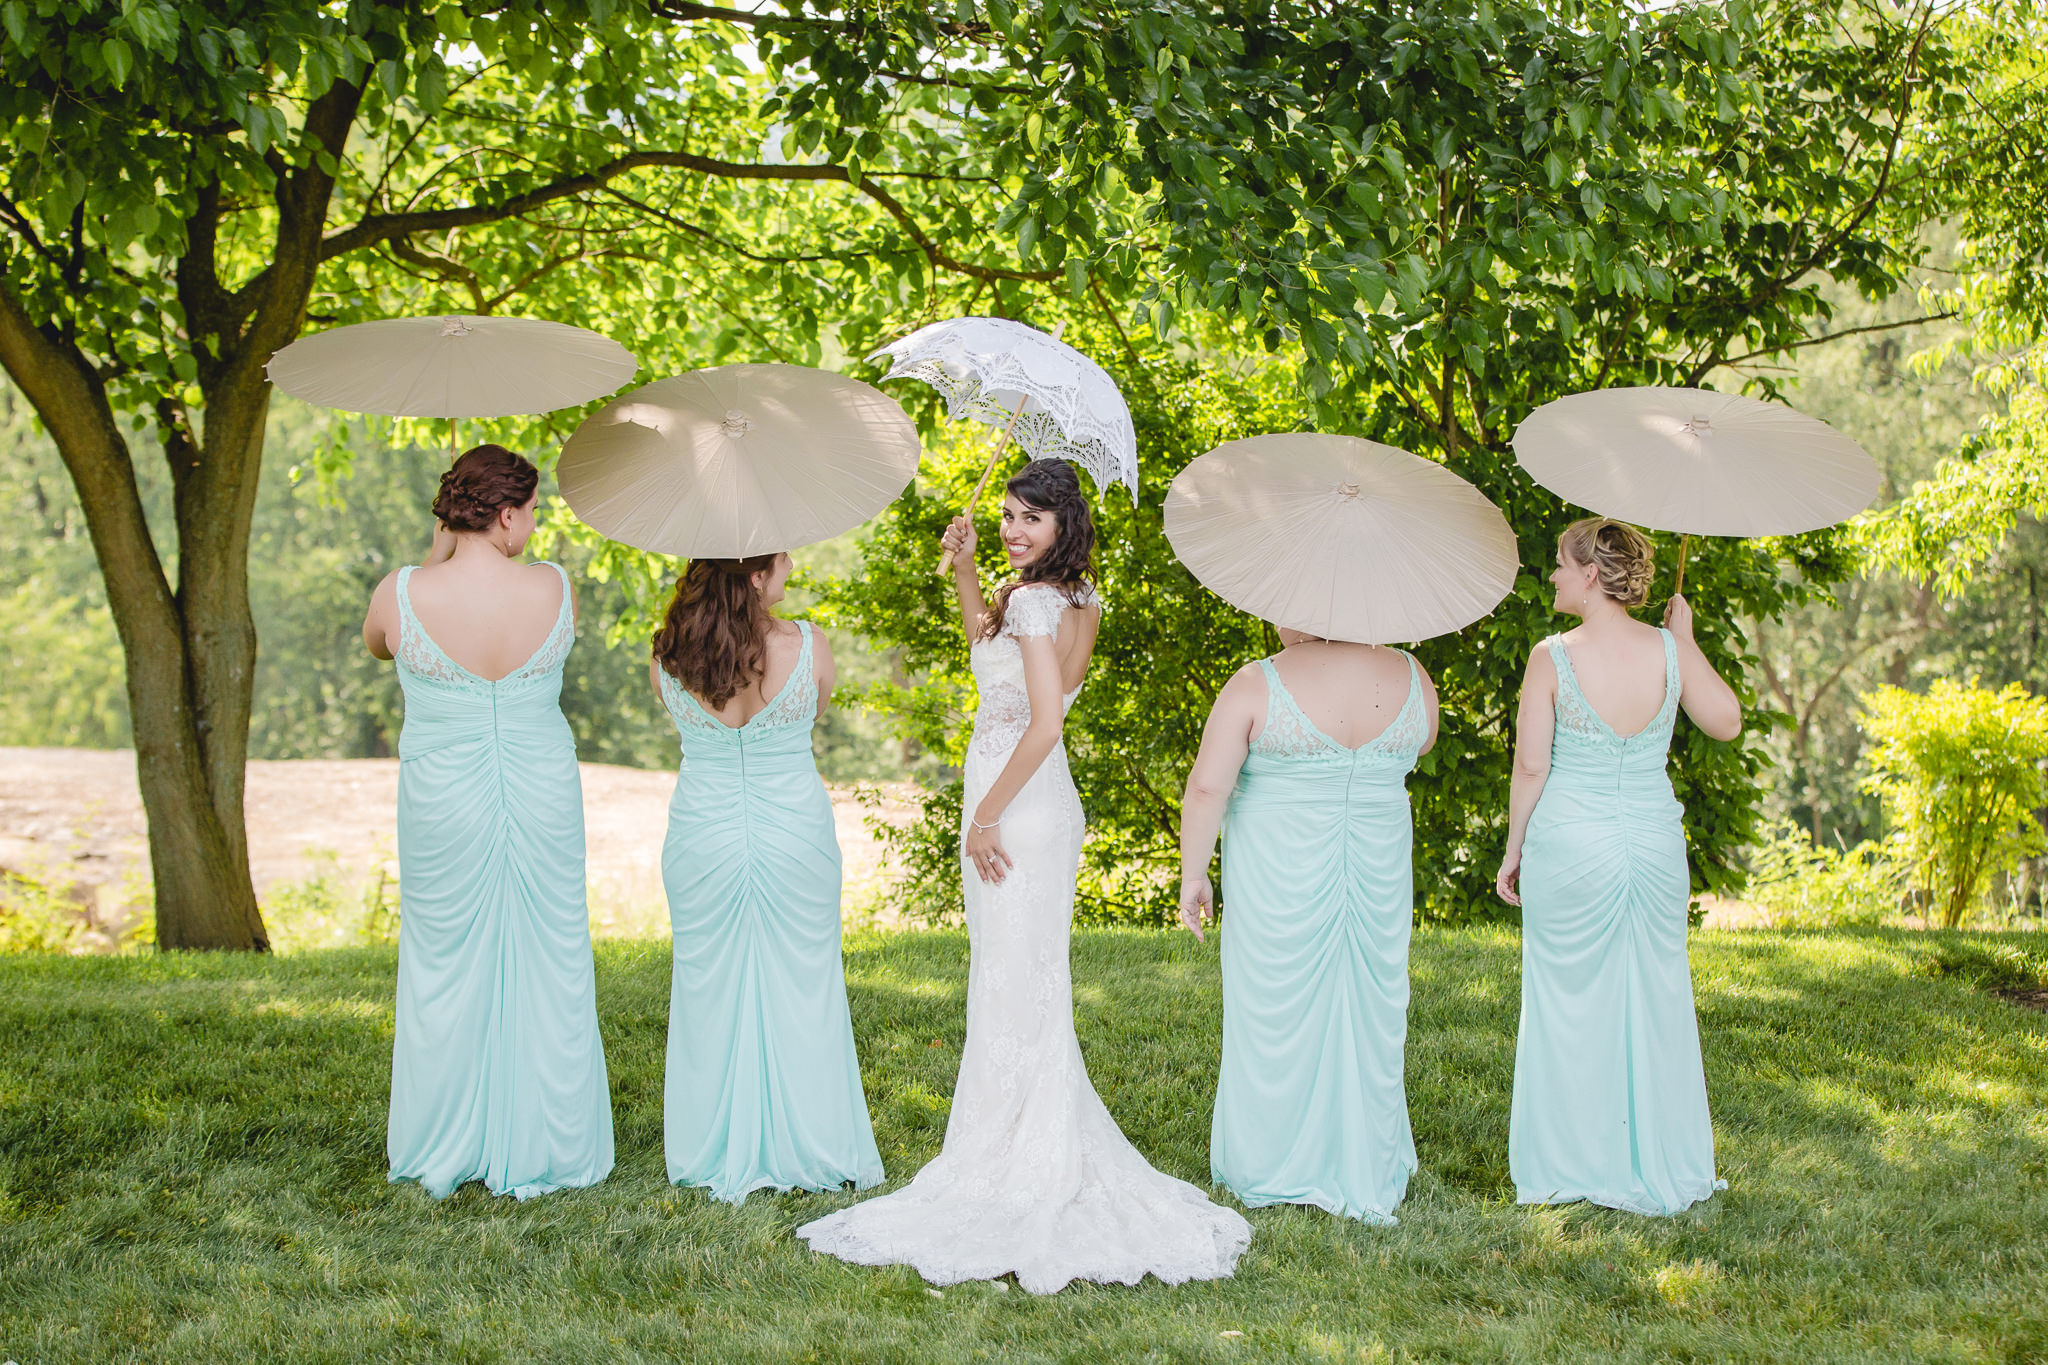 Bride and her bridesmaids posing with umbrellas at Greystone Fields